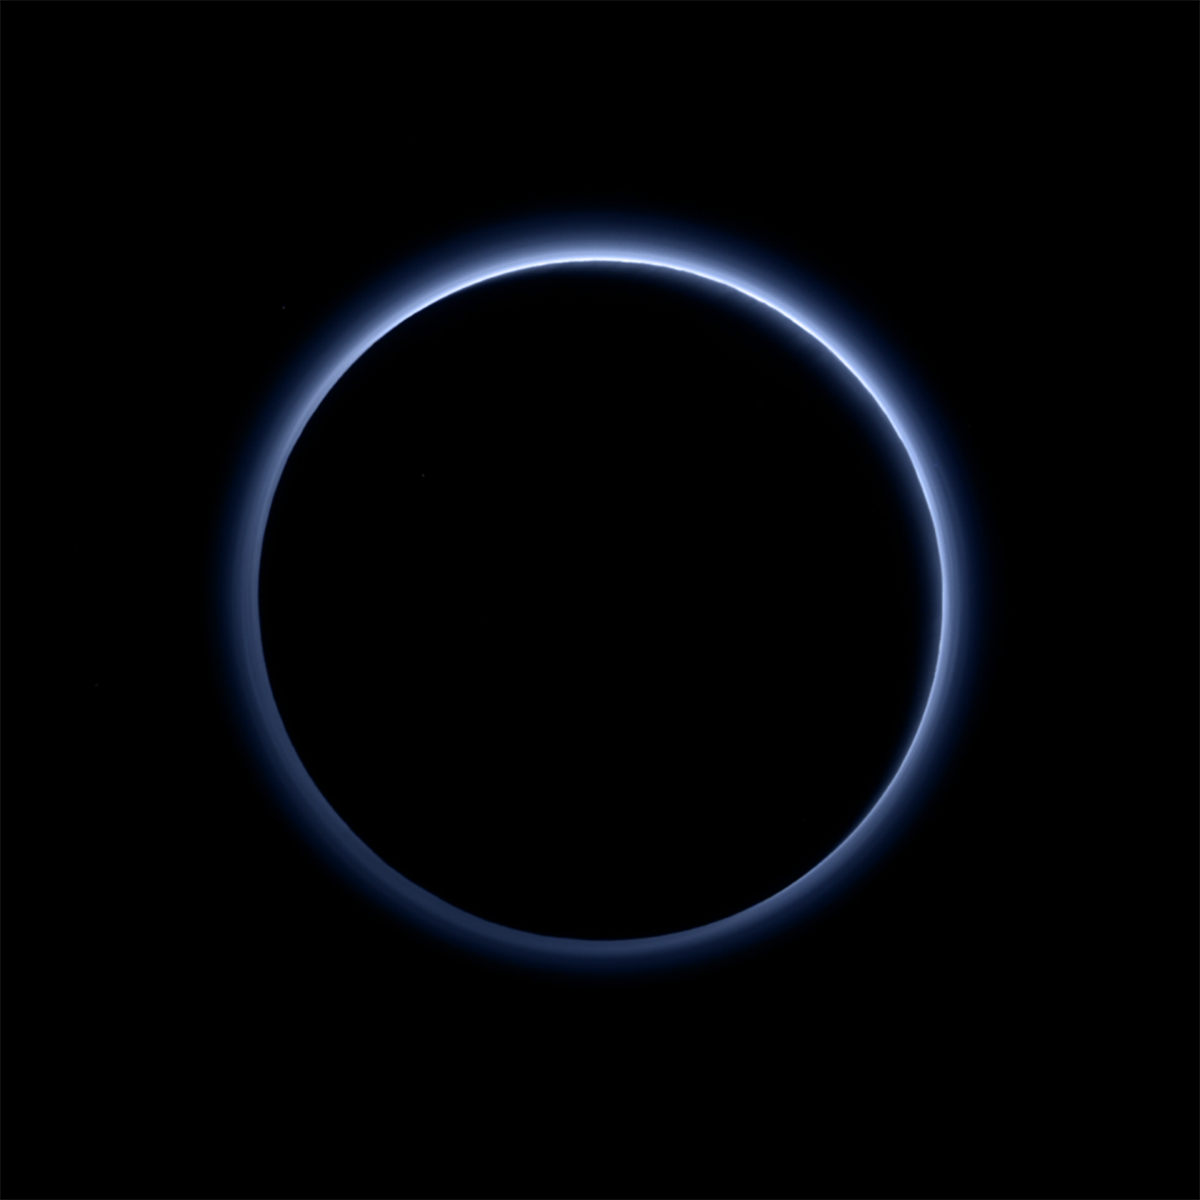 nasa images of pluto-#35